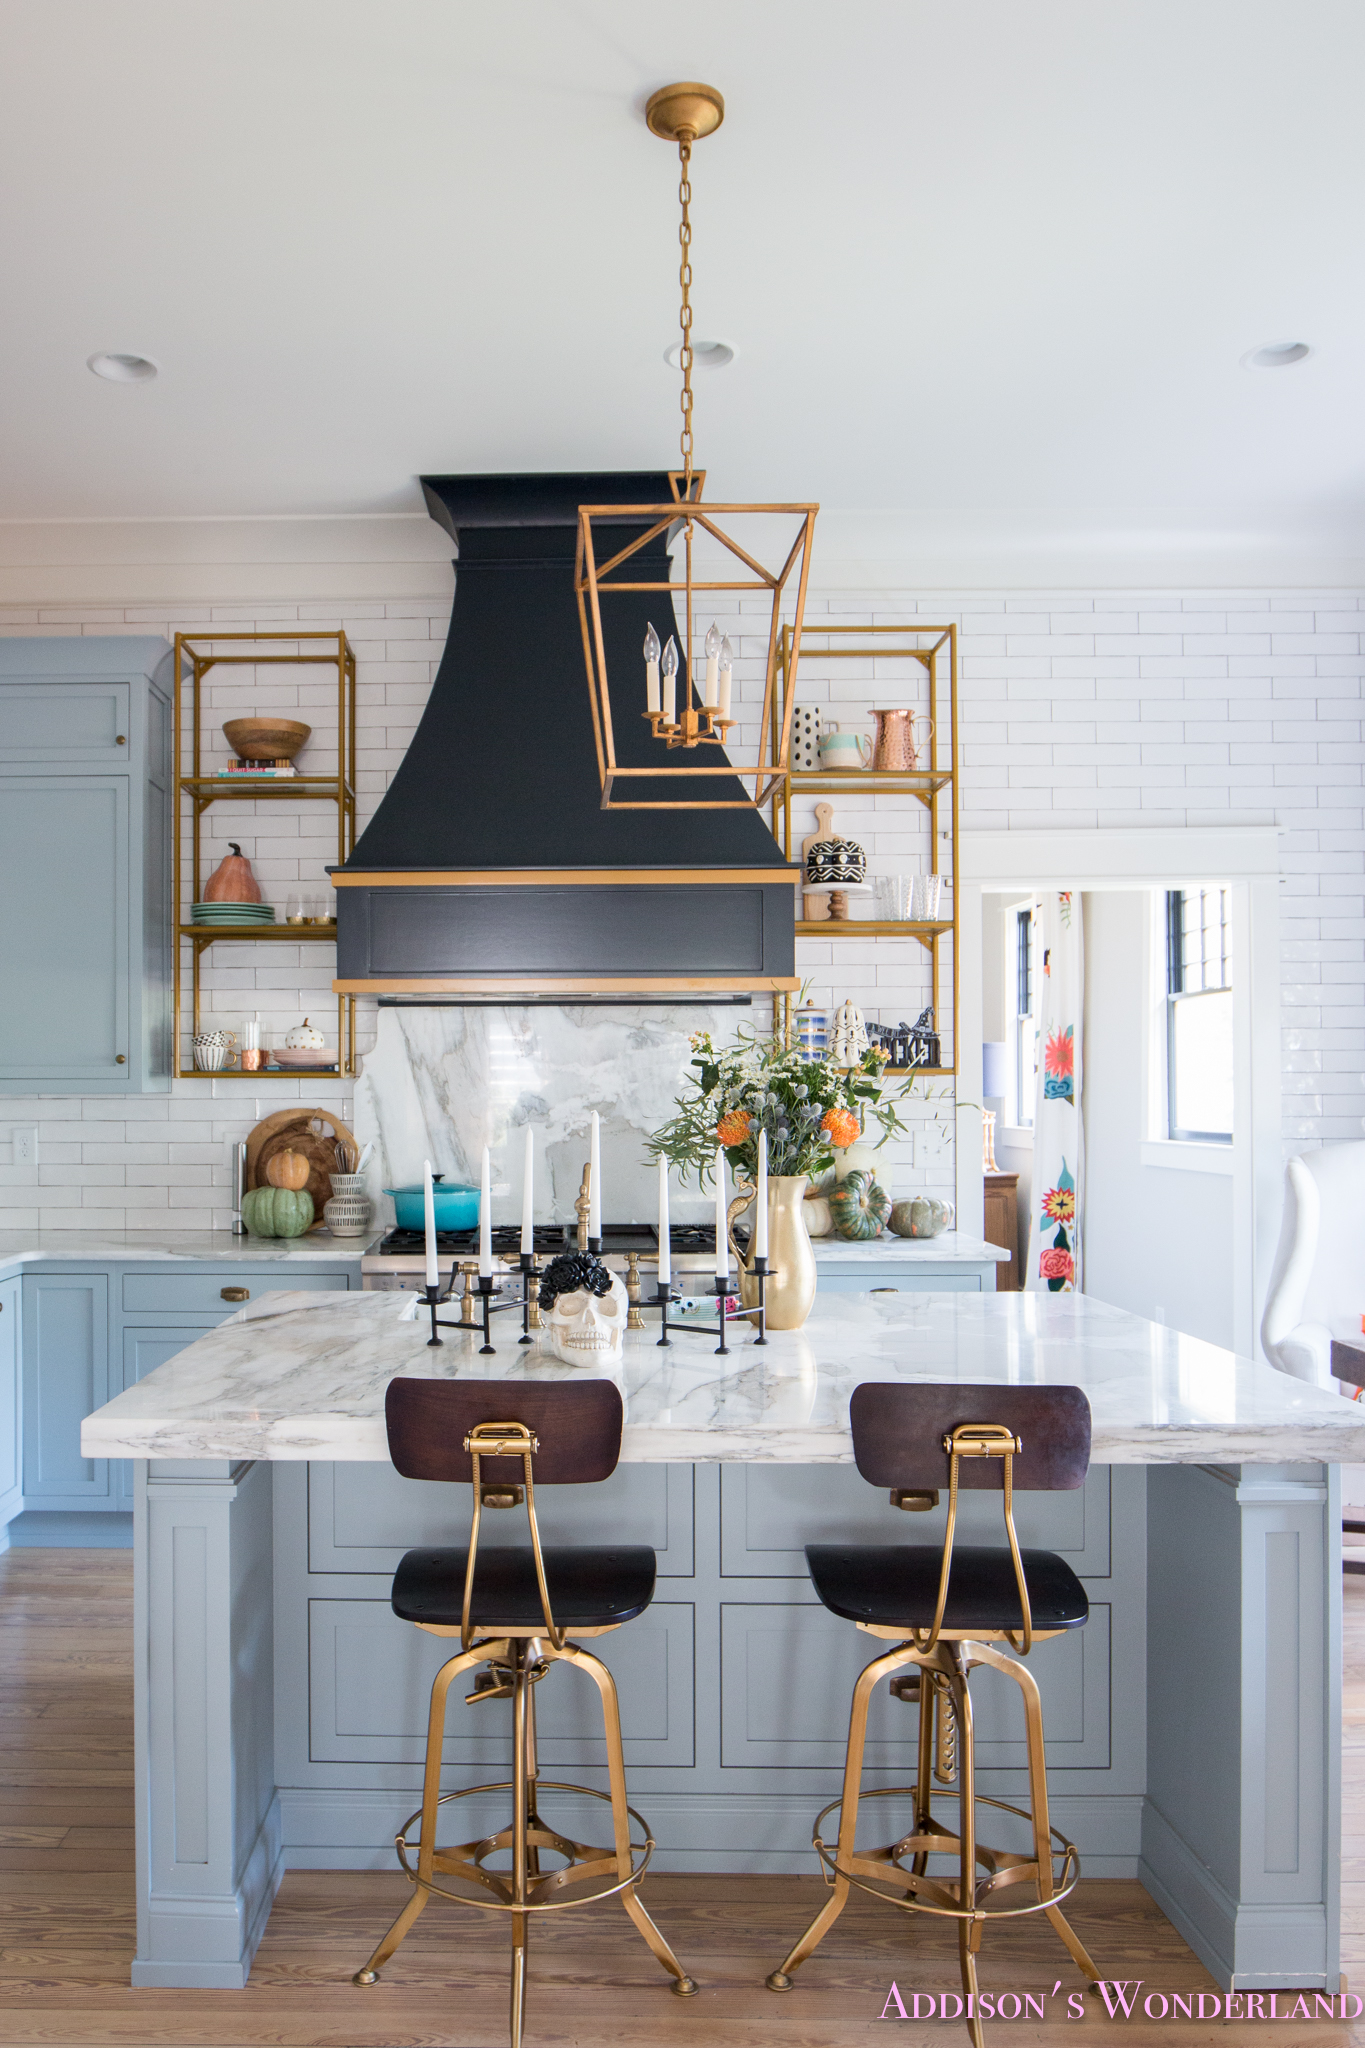 Our Spooky Halloween Kitchen With Fall Decorating Ideas